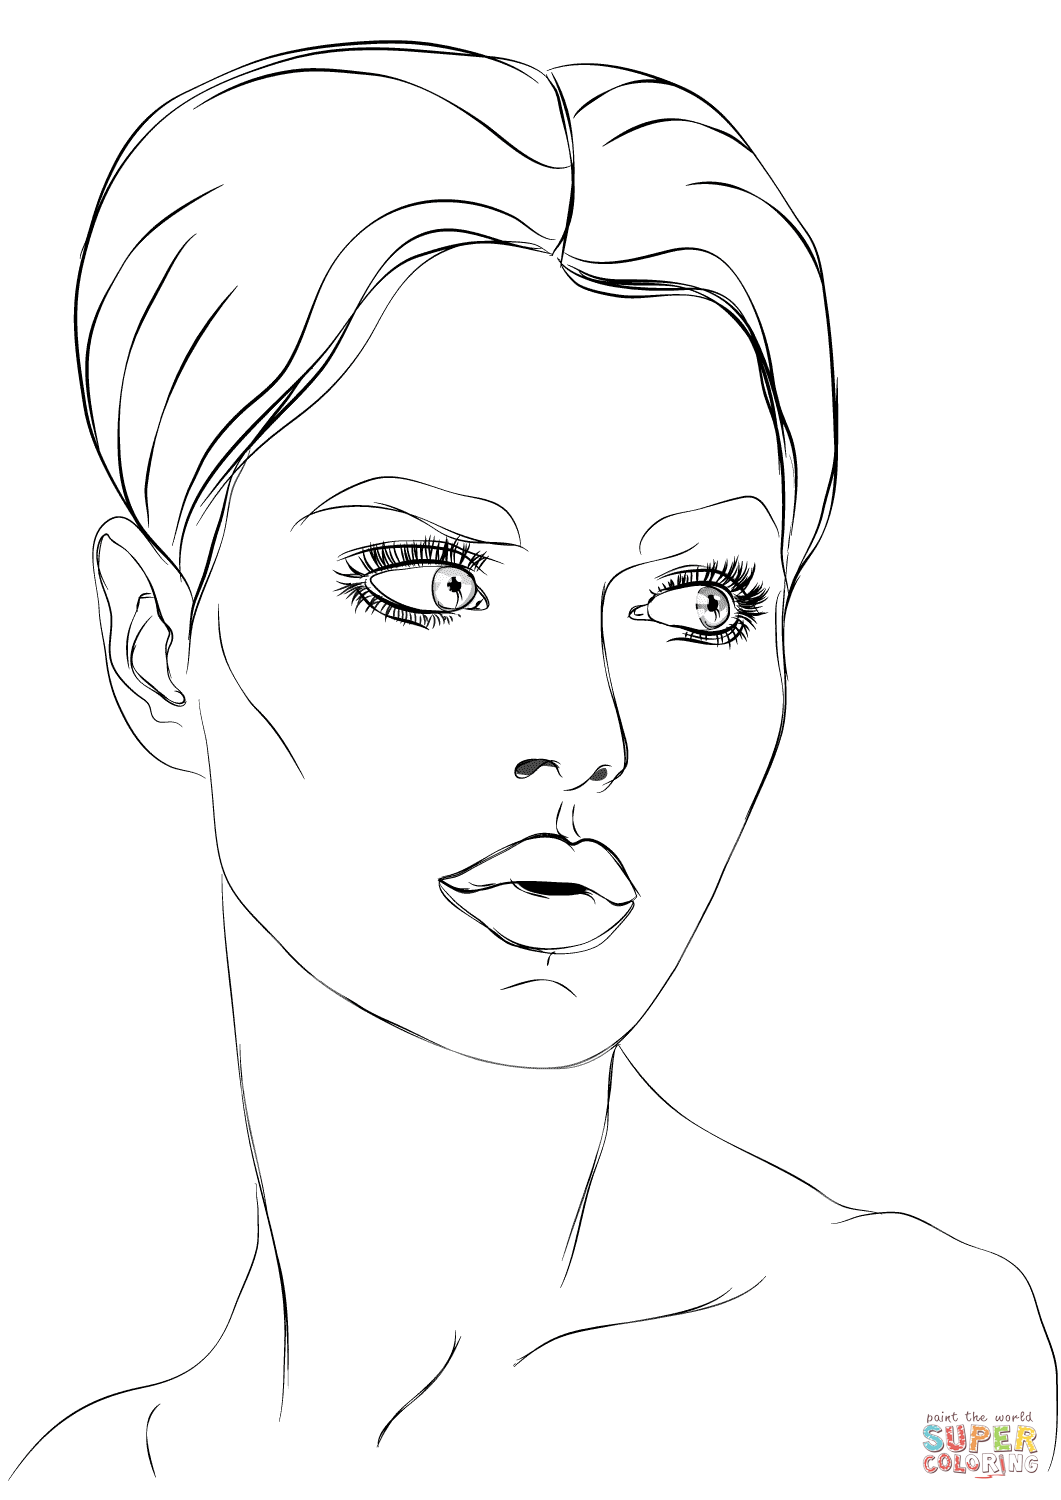 Coloring Pages : Coloring Pages Free Makeup Purses And For ...